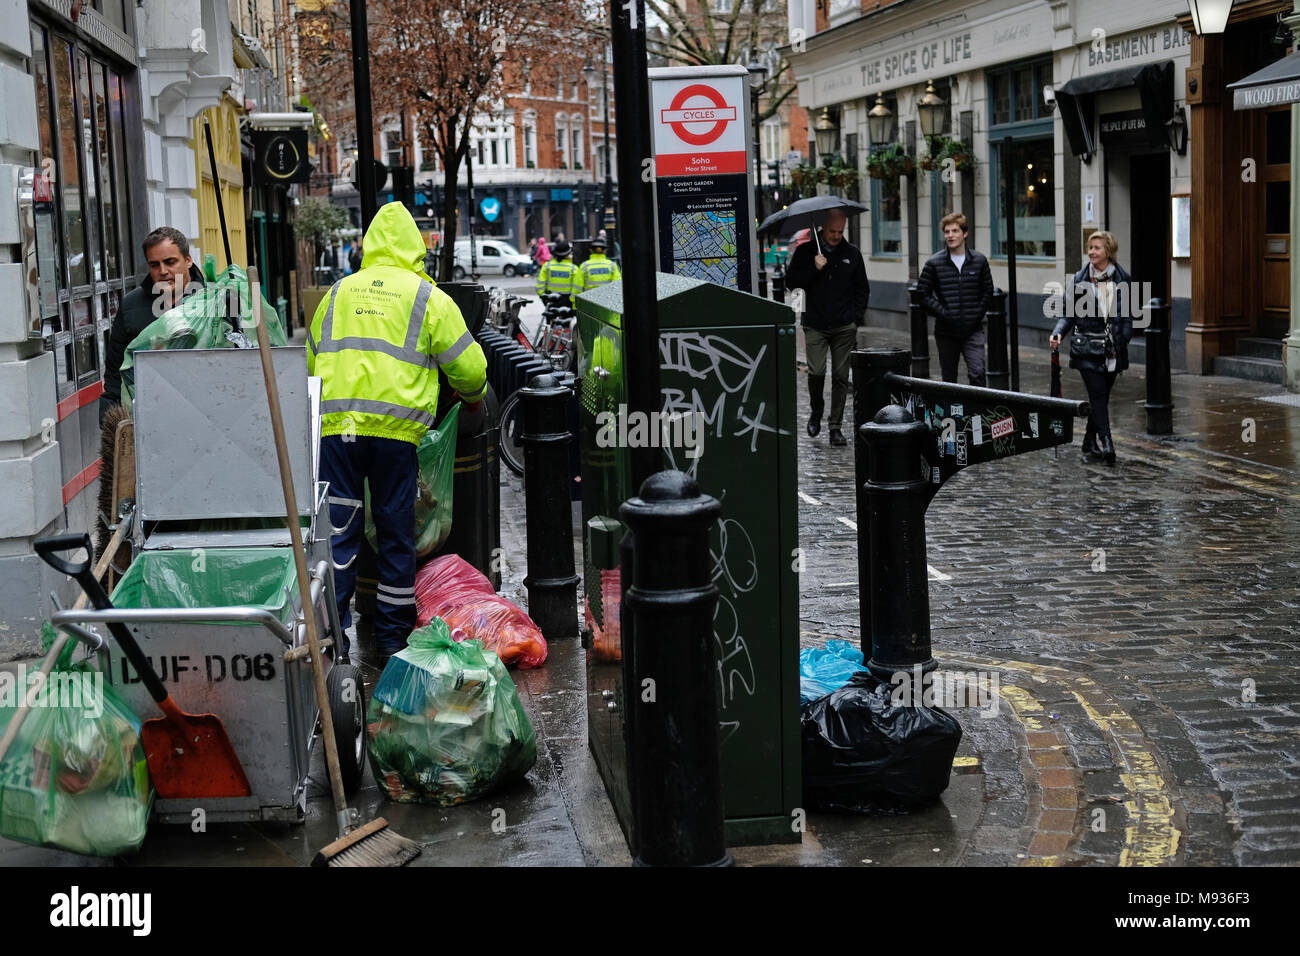 Street cleaning in Soho, London. - Stock Image